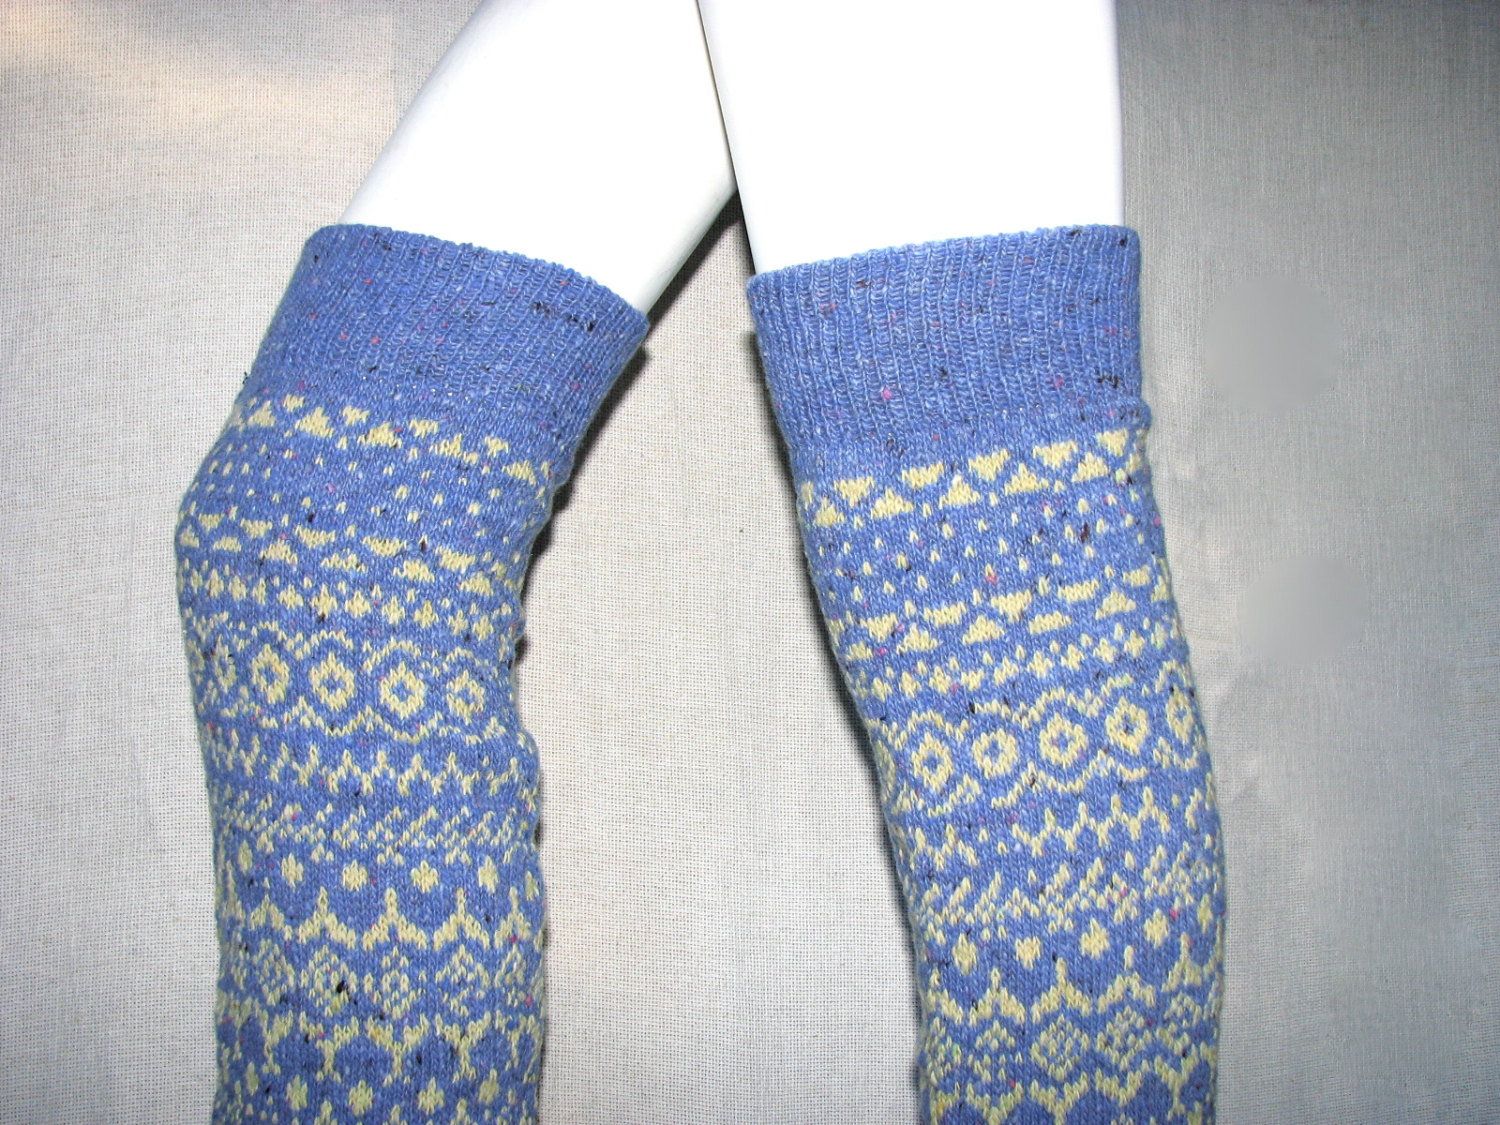 Fair Isle / Jacquard Knit Over the Knee/Thigh High Legwarmers/Leg Warmers - Wool Tweed Yarn